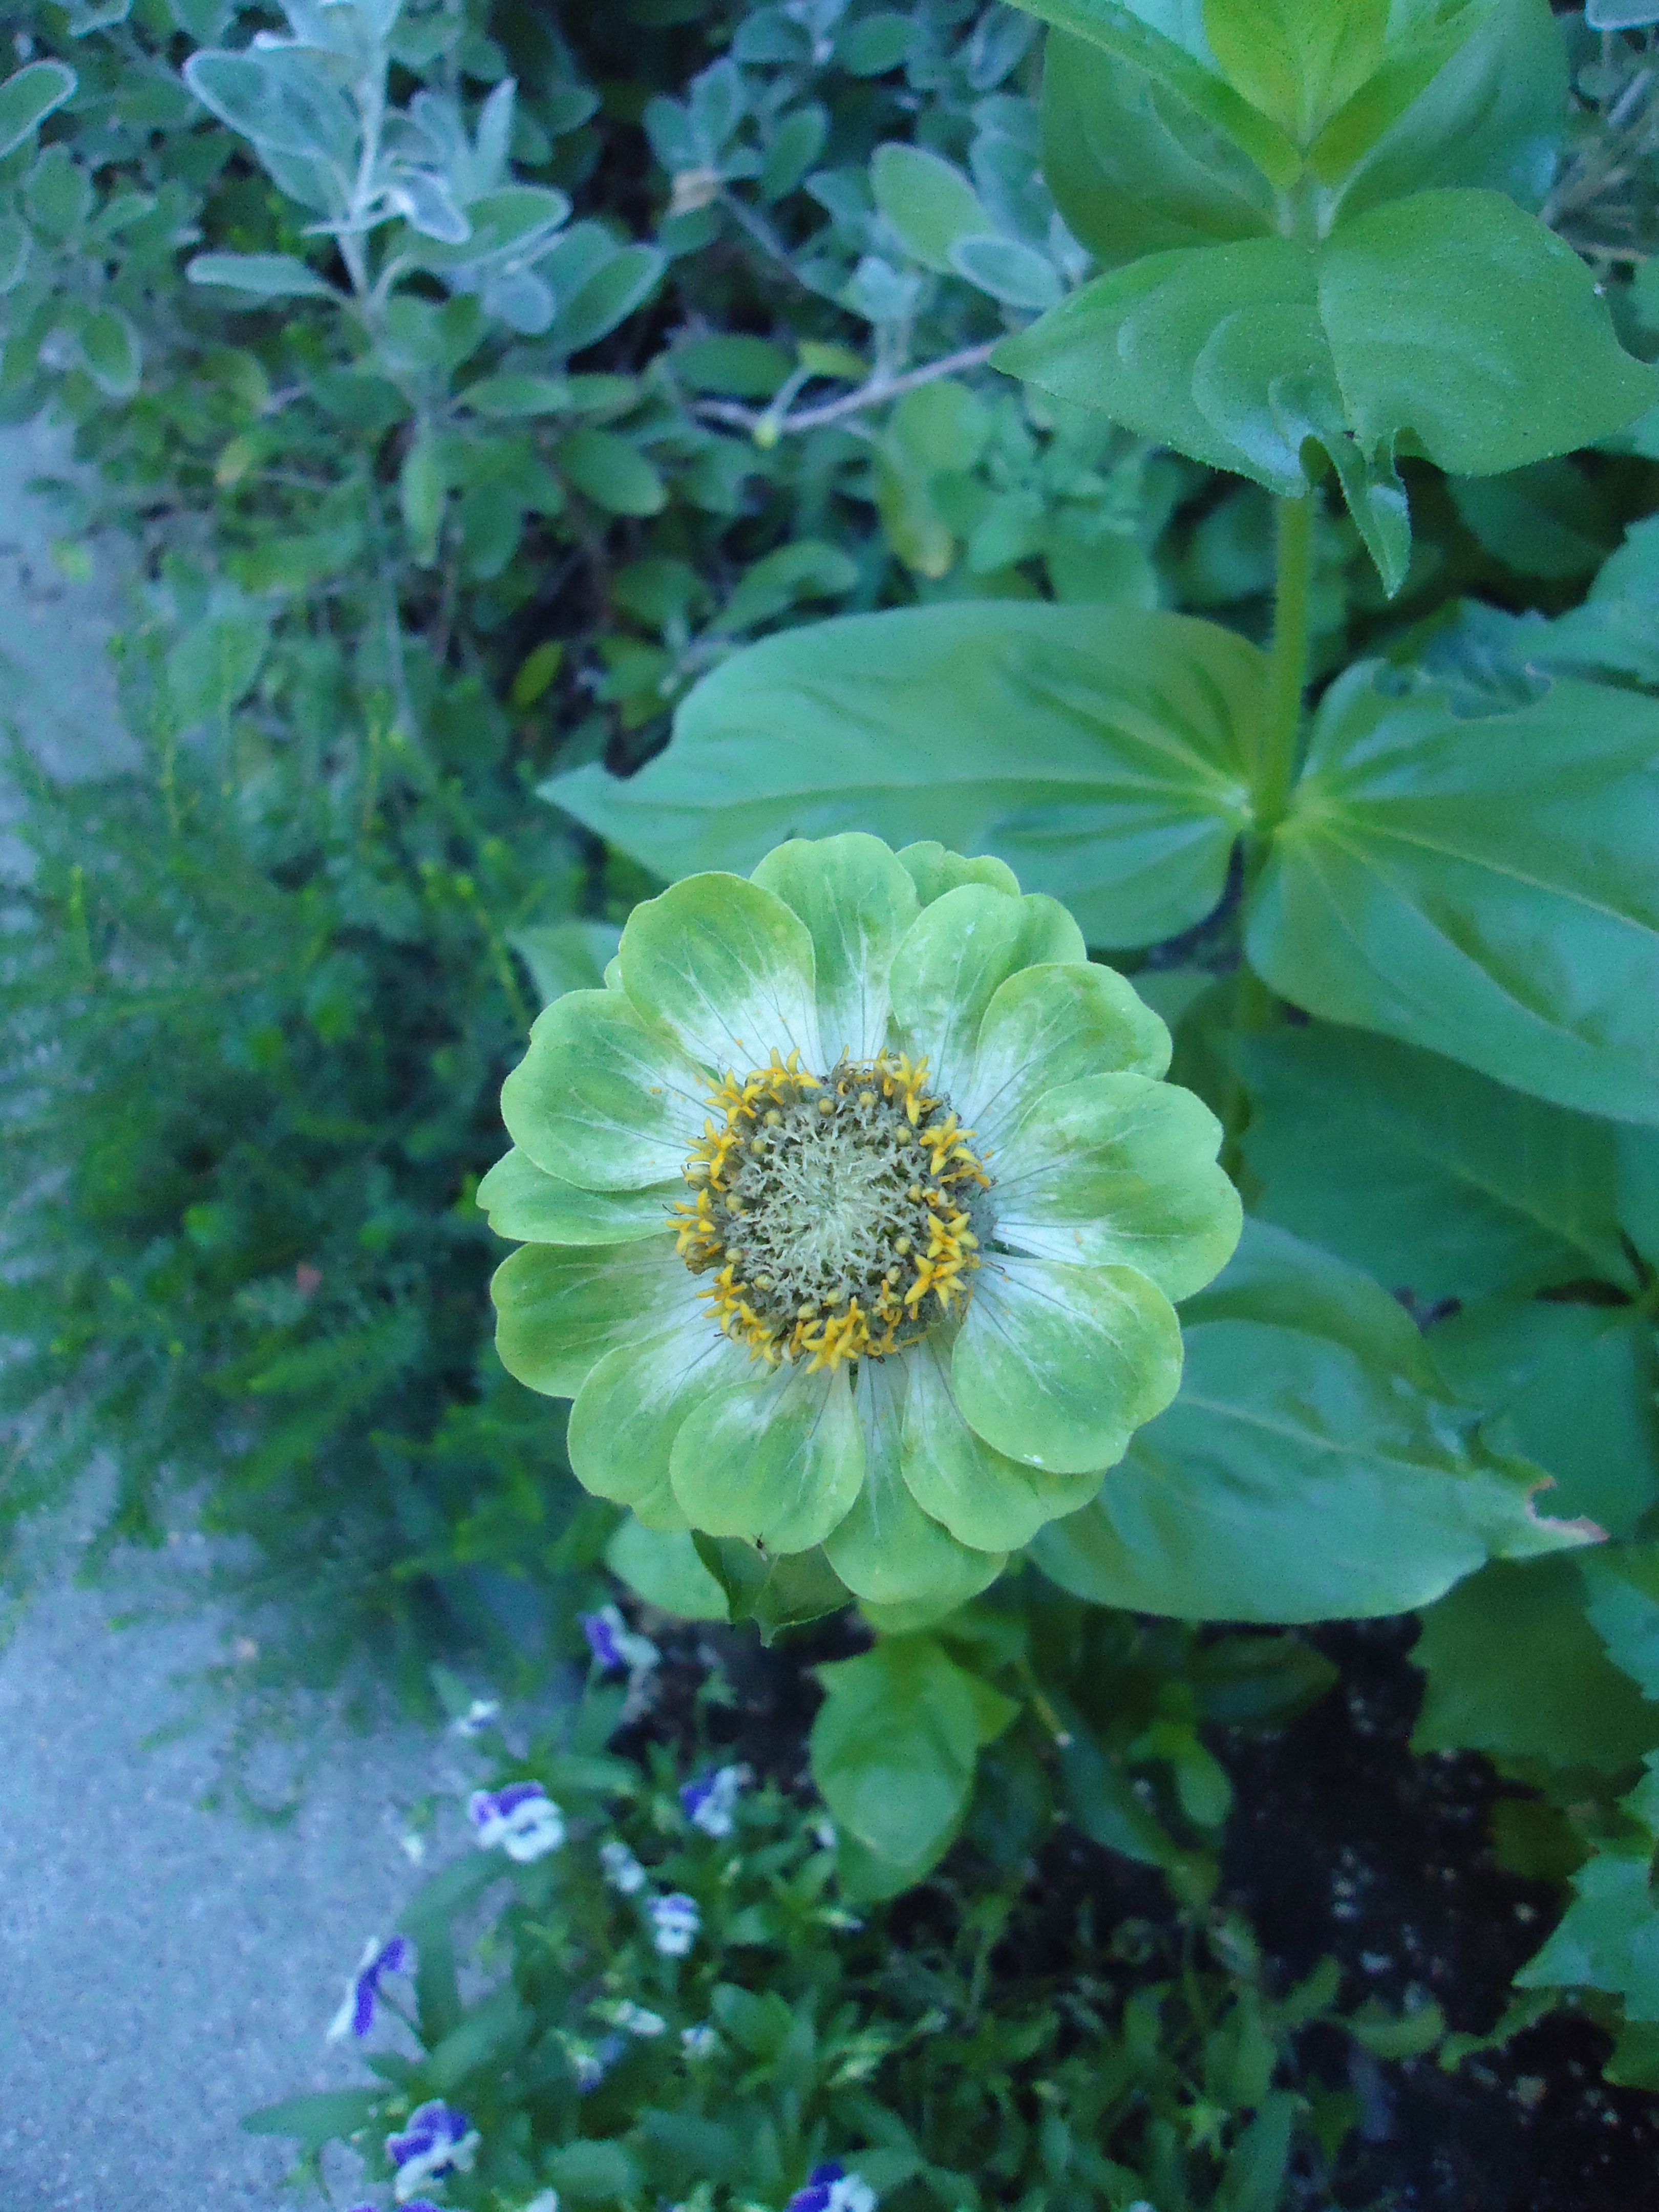 The Many Faces of Zinnia 'Green Envy' and 'Purple Prince'